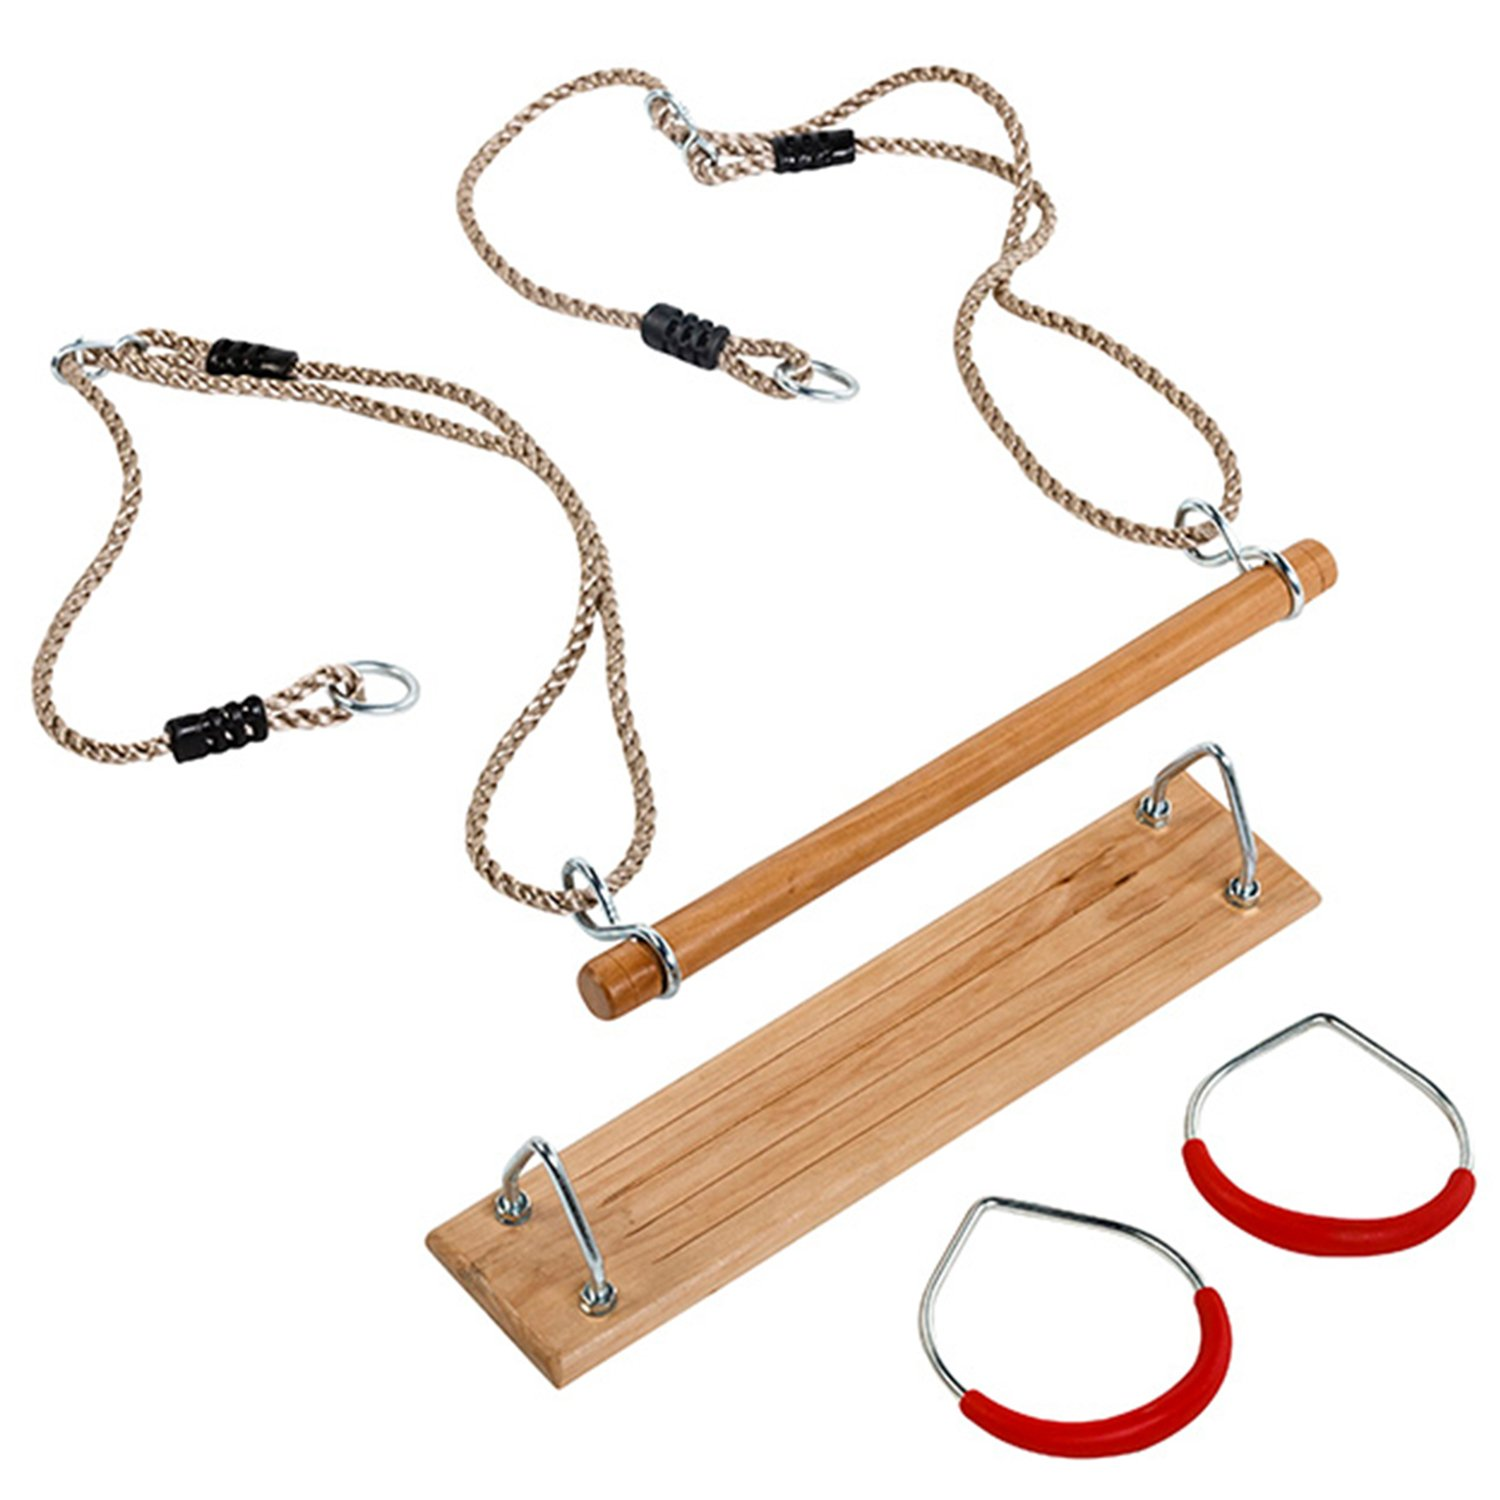 Garden Games Triple Swing Pack Hardwood Swing Seat Trapeze Bar and Gym Rings with Ropes Garden Games Limited